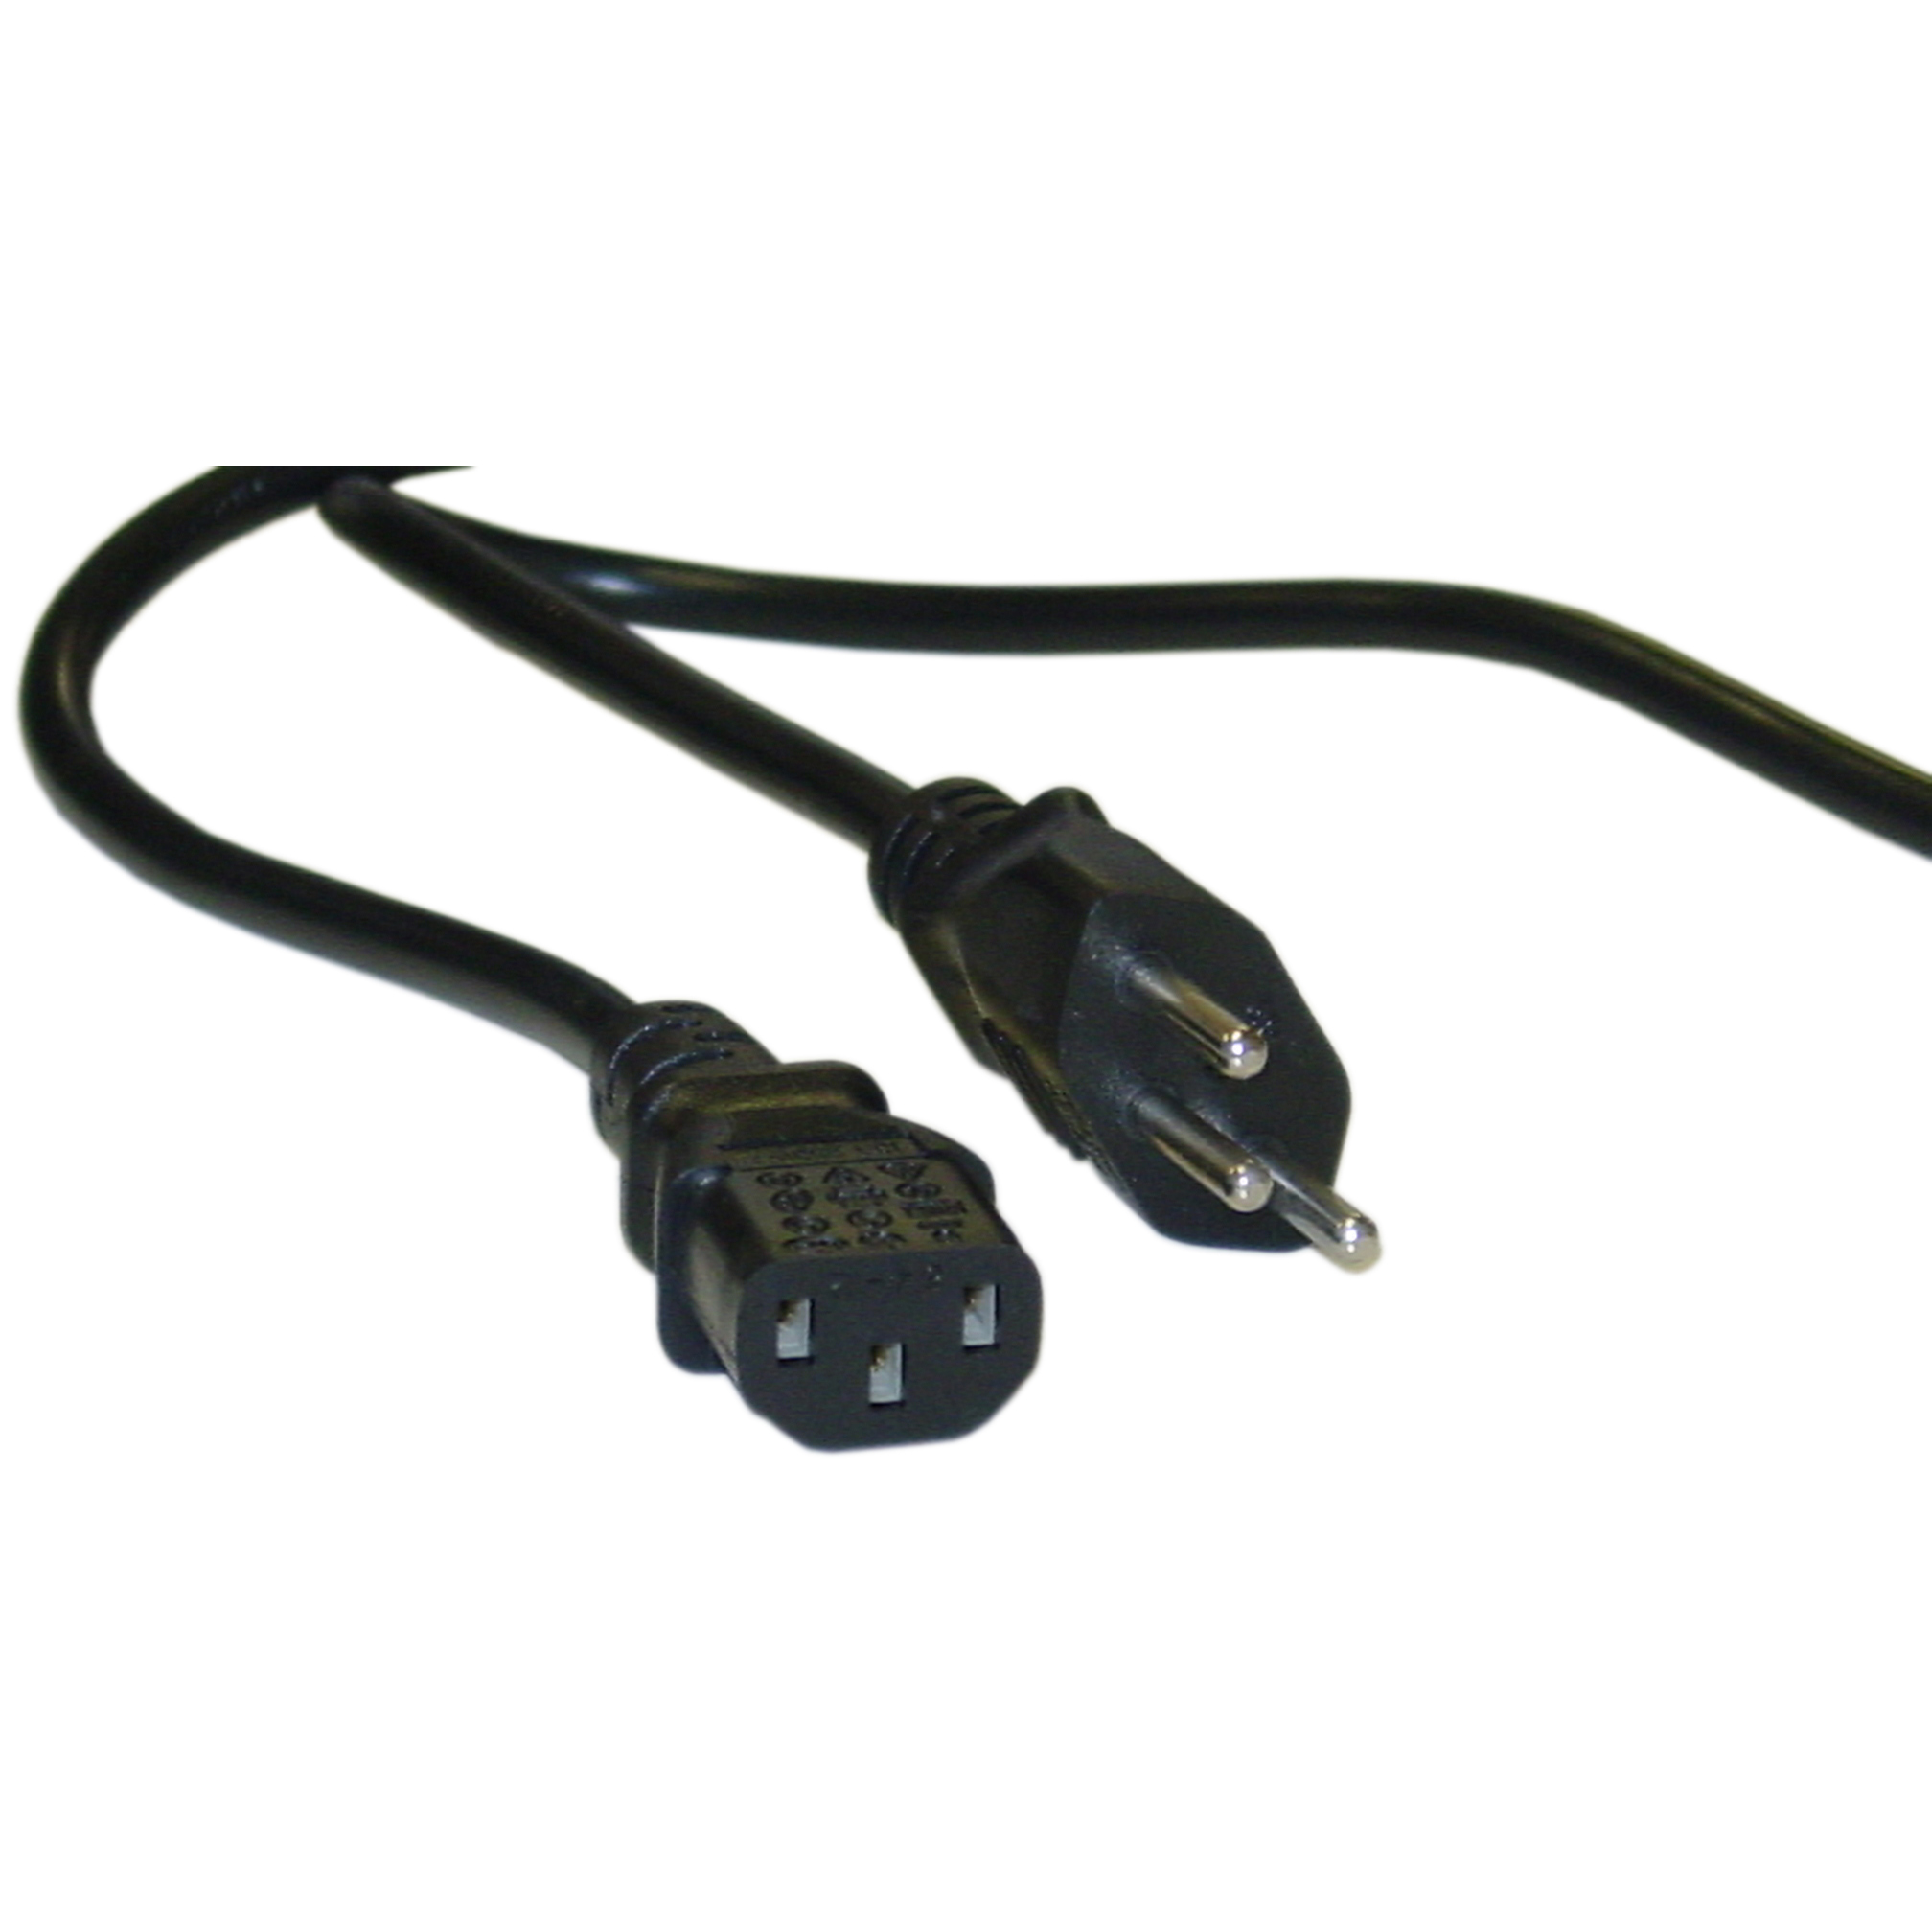 10w1 172 6ft swiss power cord se 1011 iec c13 black  at bakdesigns.co